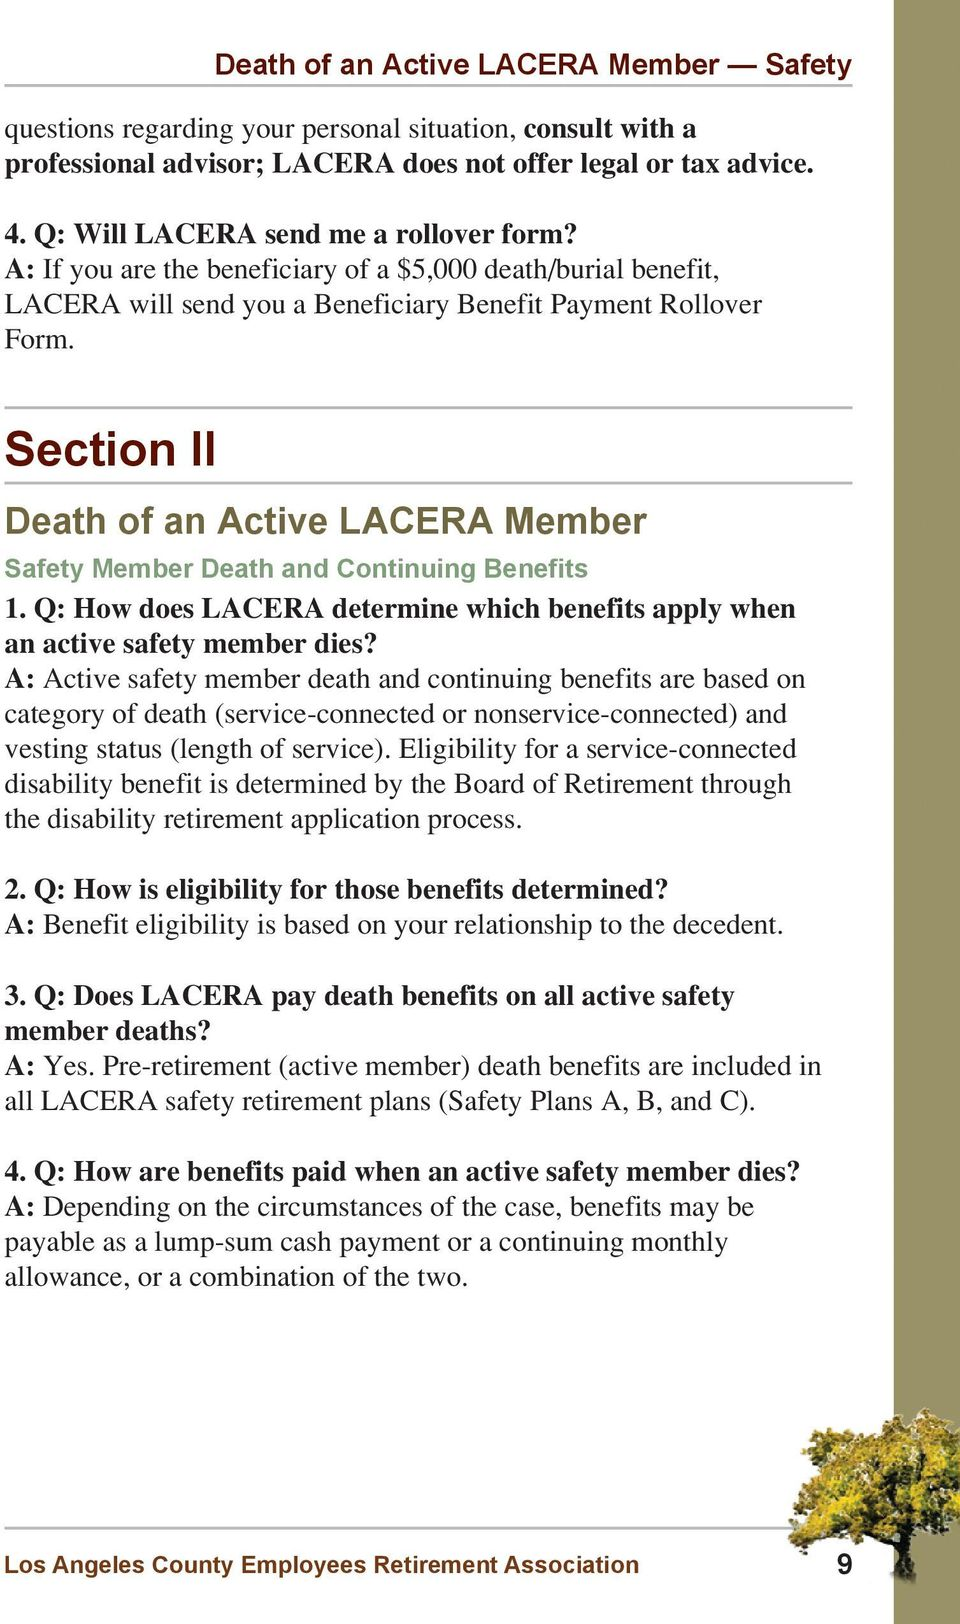 Section II Death of an Active LACERA Member Safety Member Death and Continuing Benefits 1. Q: How does LACERA determine which benefits apply when an active safety member dies?